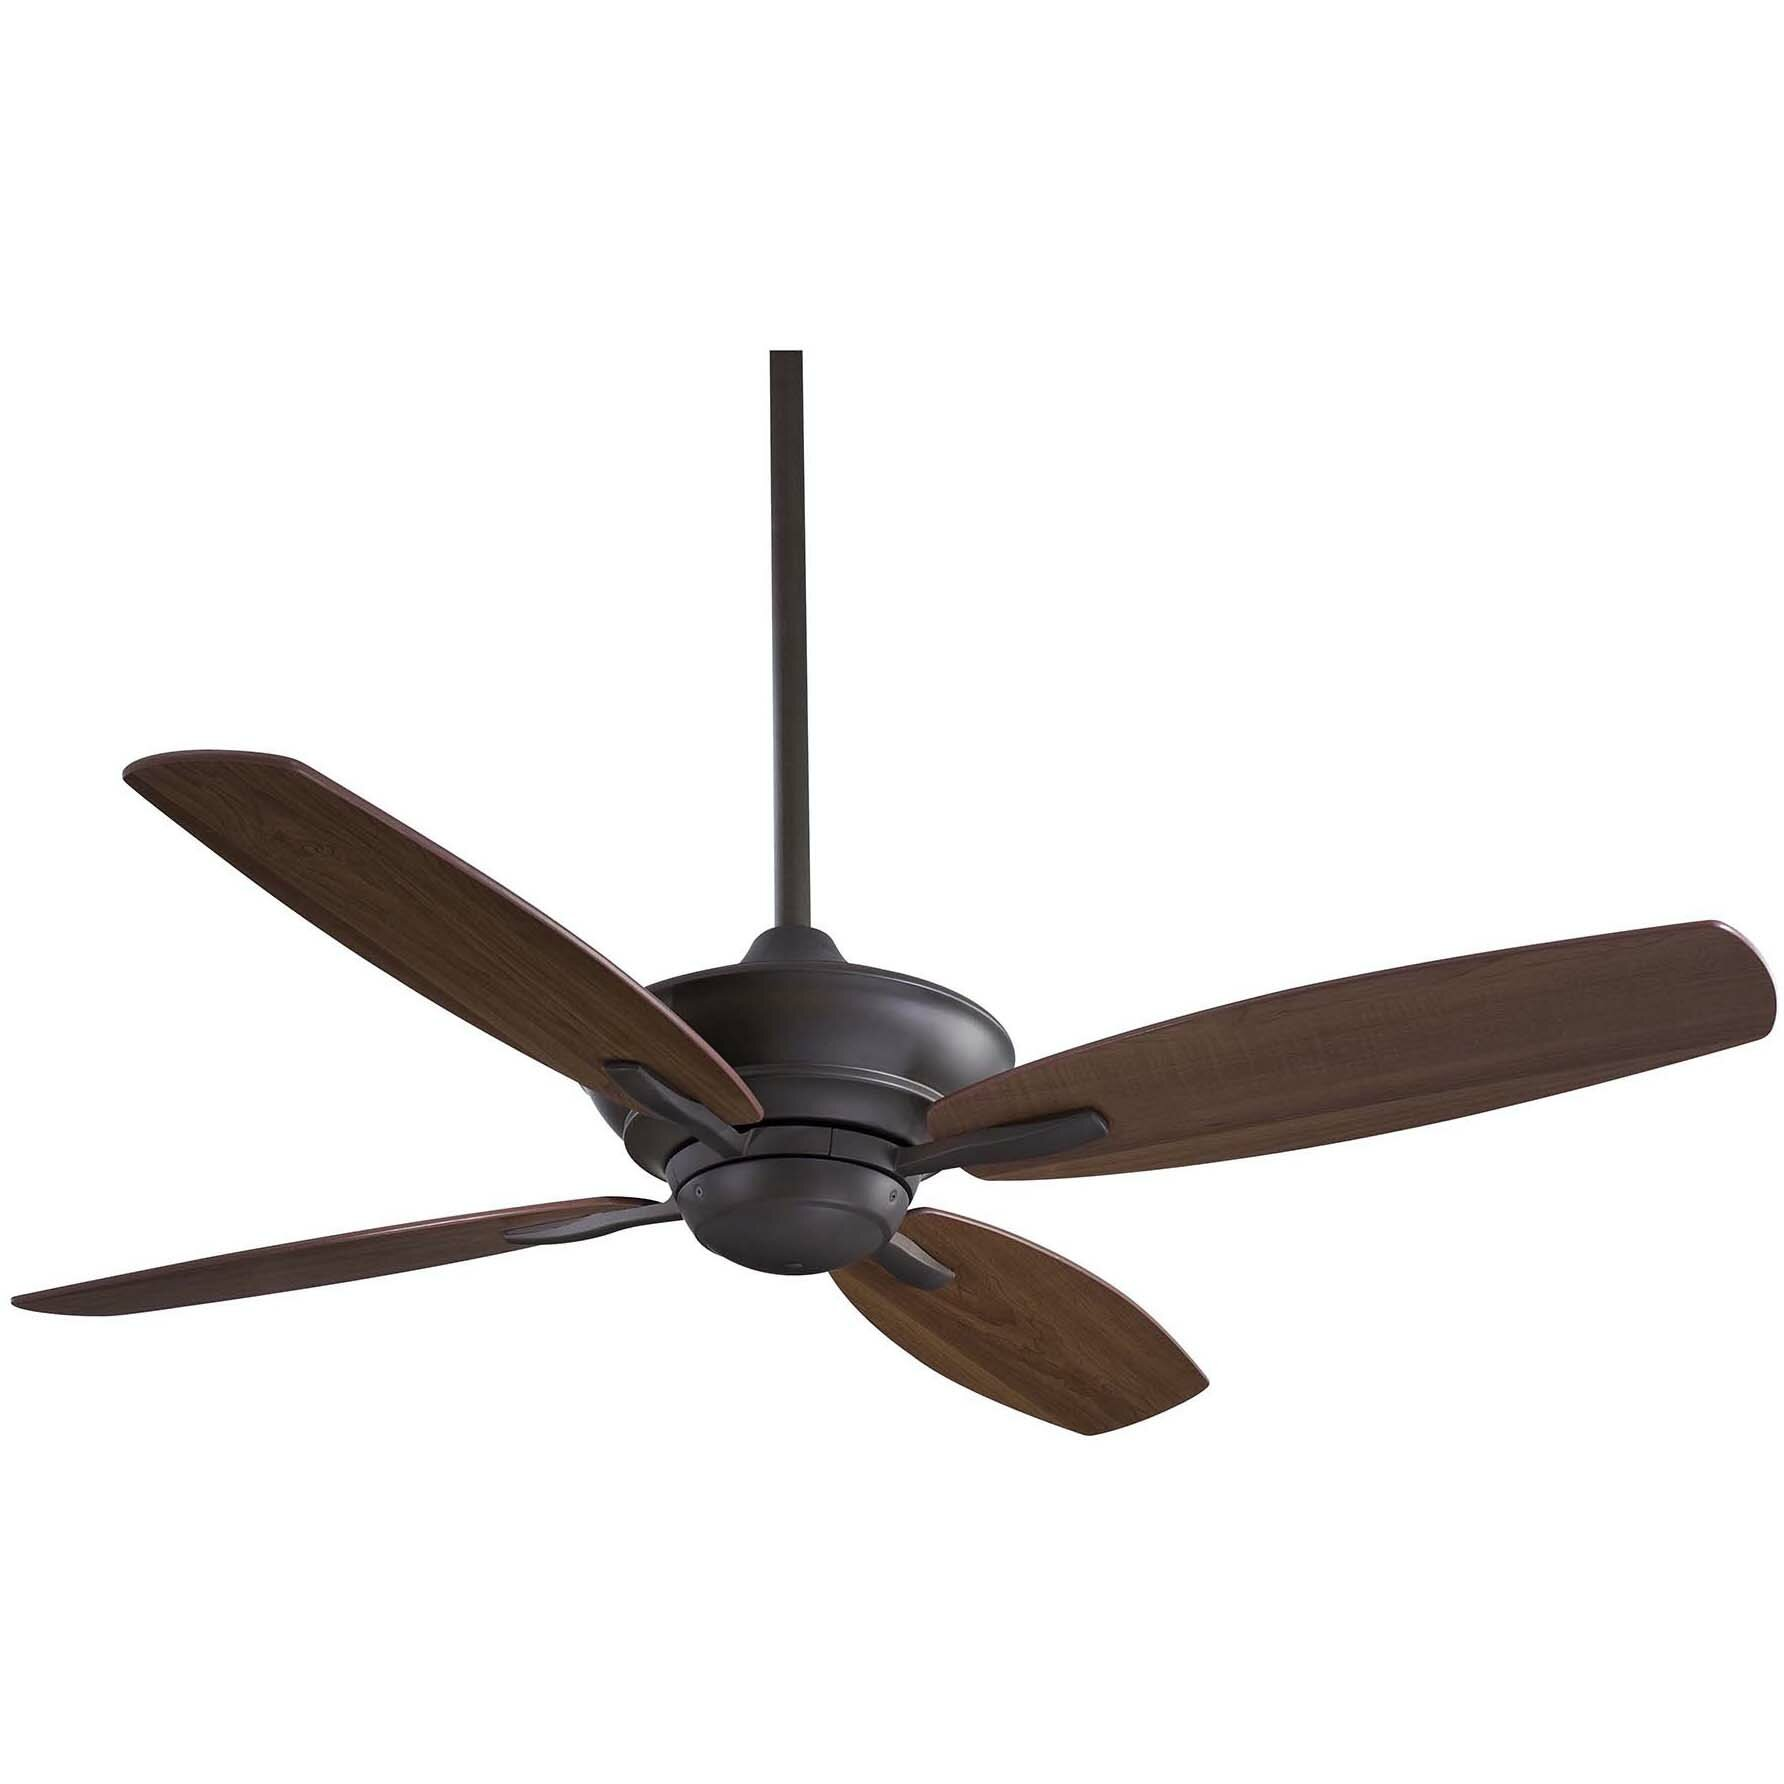 Minka Aire 52 New Era 4 Blade Ceiling Fan With Remote Reviews Birch Lane